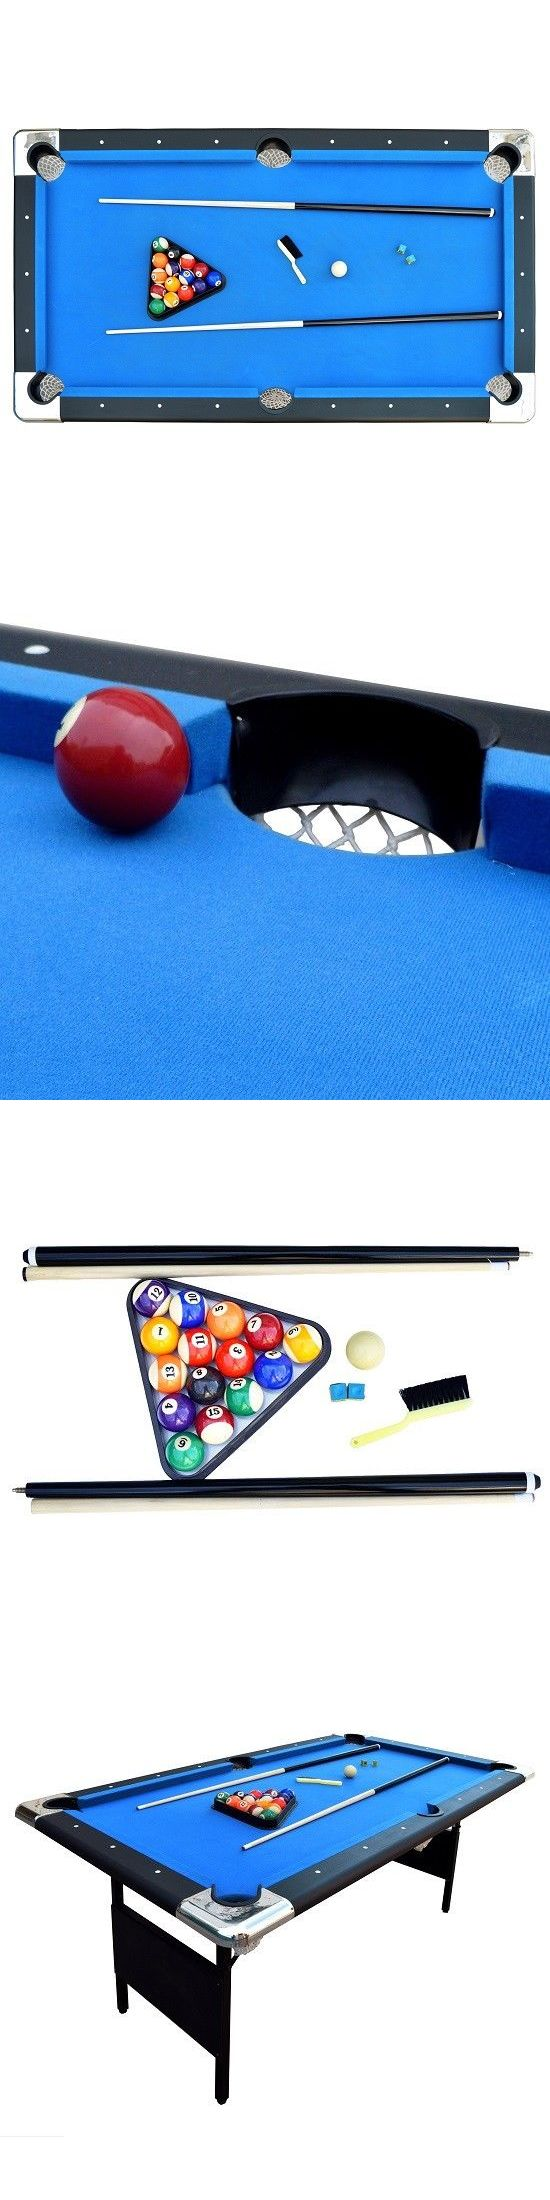 Tables 21213: Portable Pool Table Billiard Game Play Rope Net Pocket Folding   U003e BUY